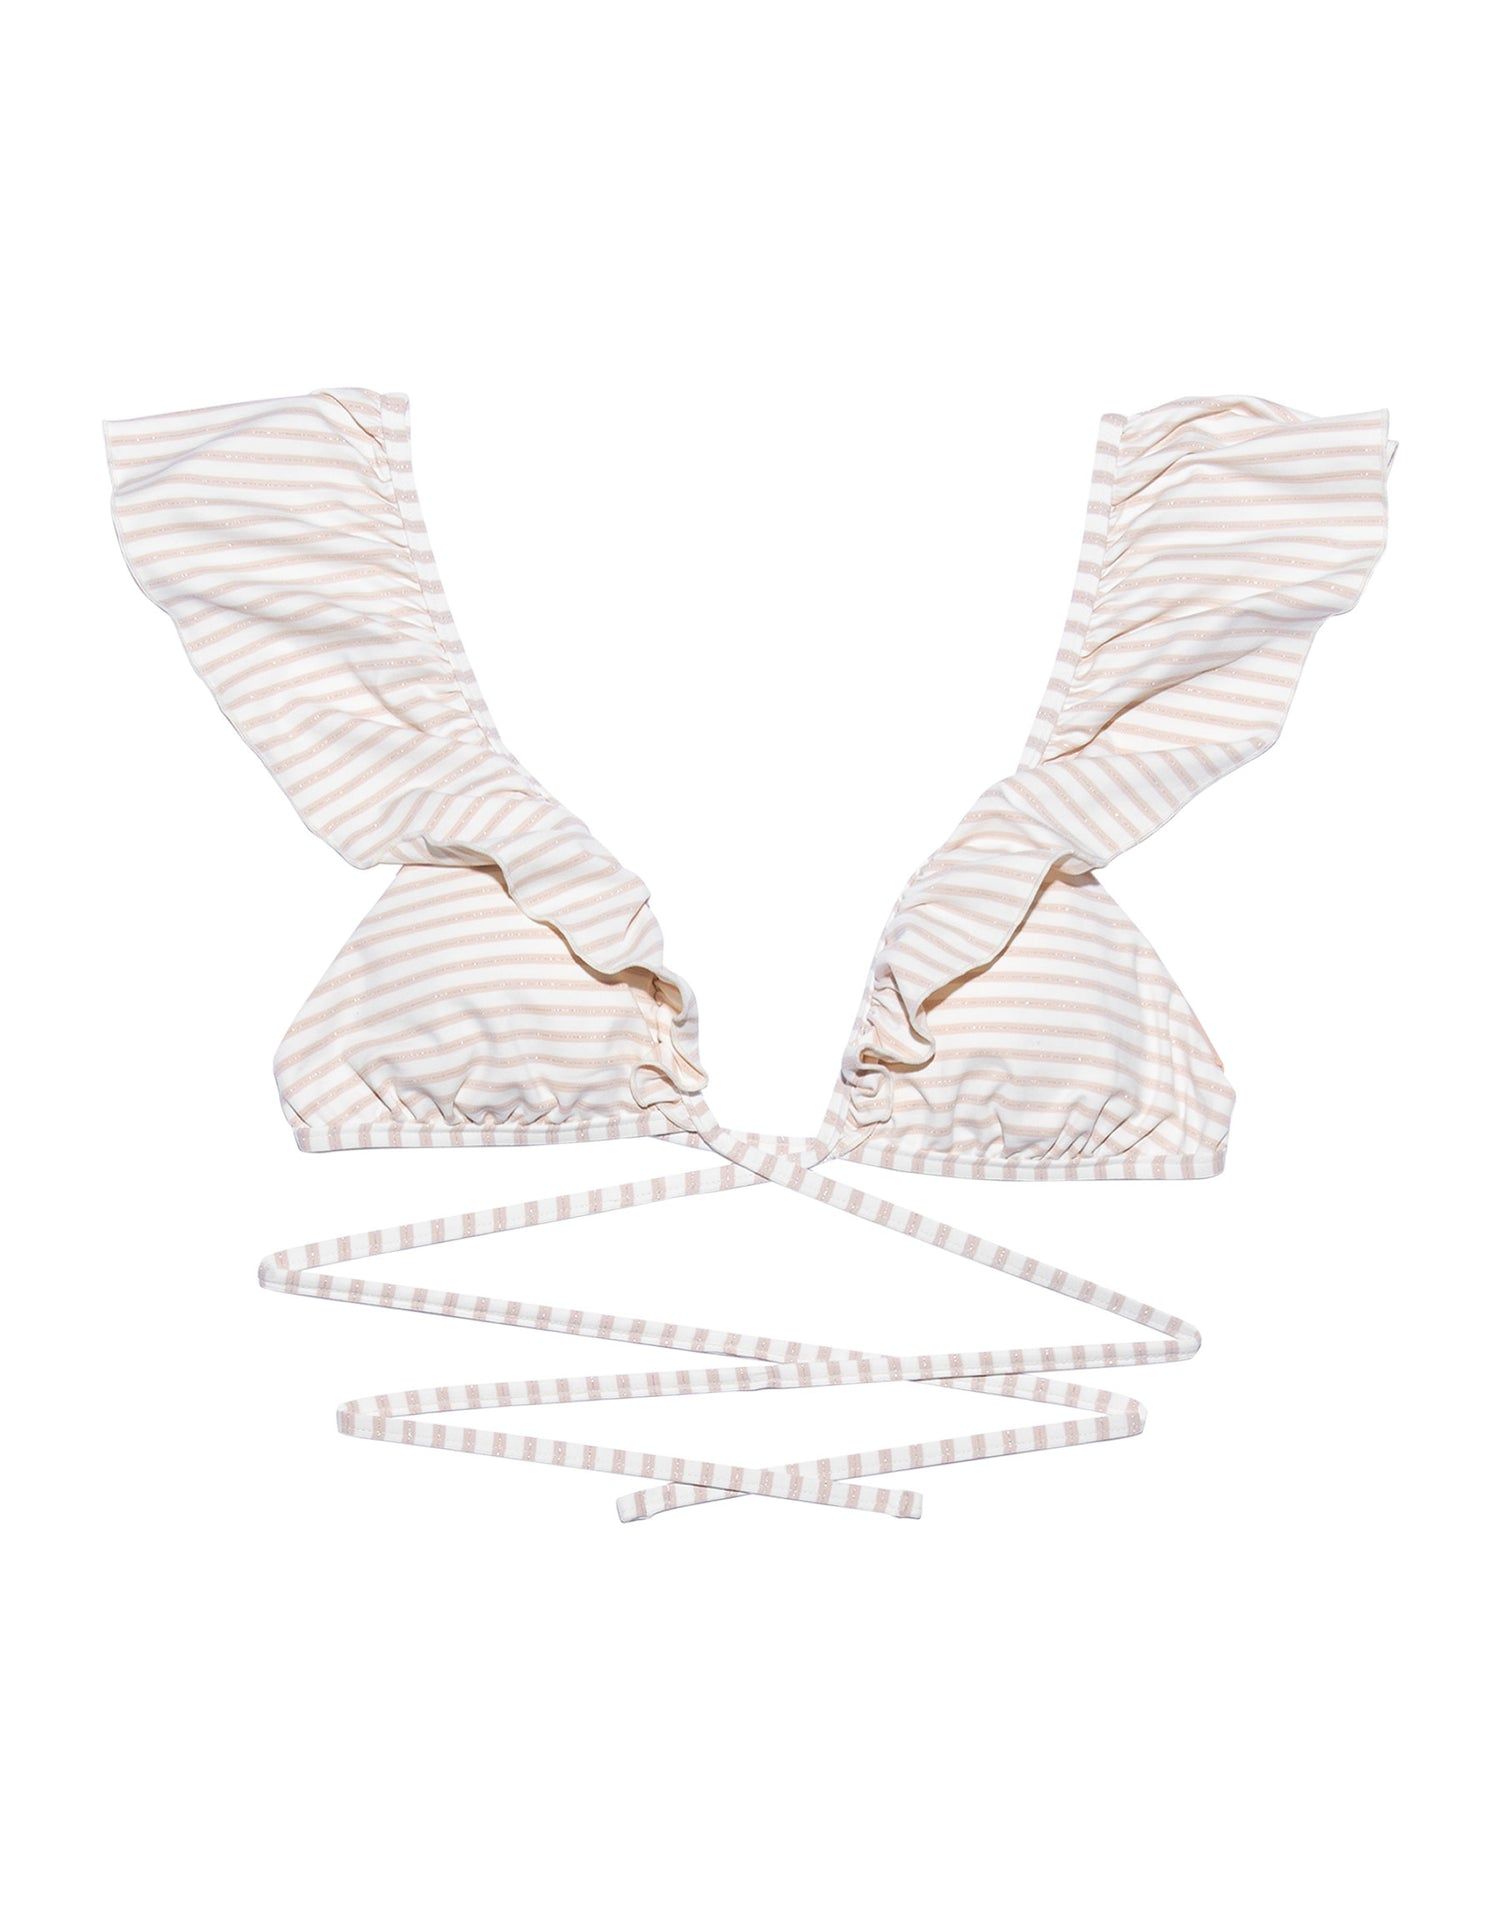 Scarlette Wrap Bikini Top with Ruffle Detail in Blush Stripe - product view